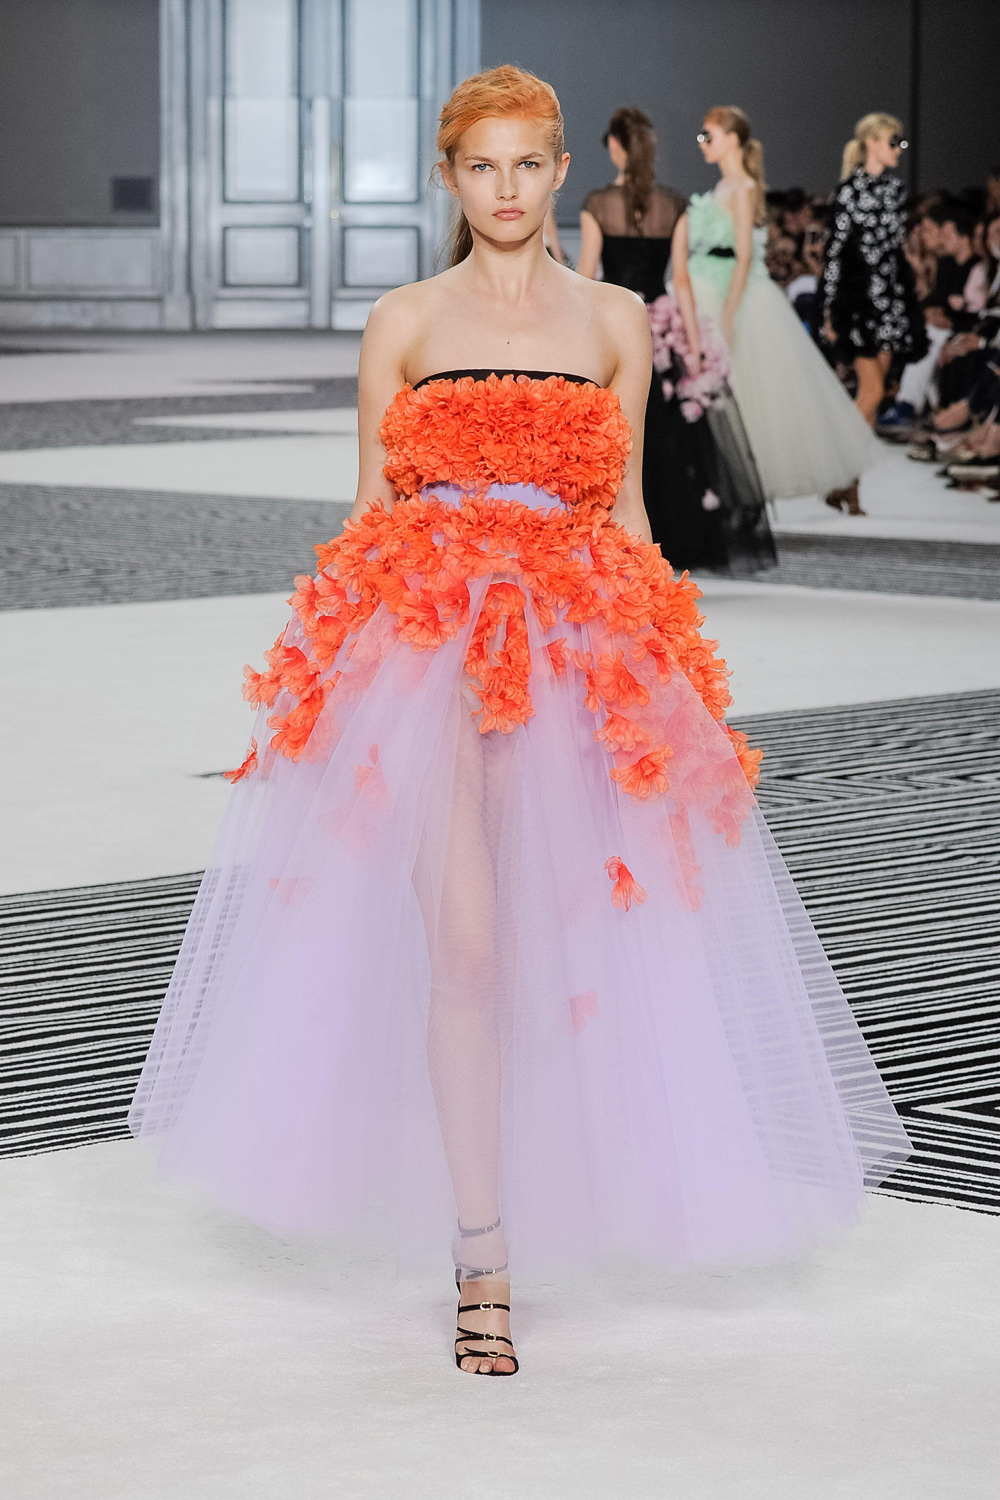 7 Dream Dresses We Loved At Couture Fashion Week recommendations